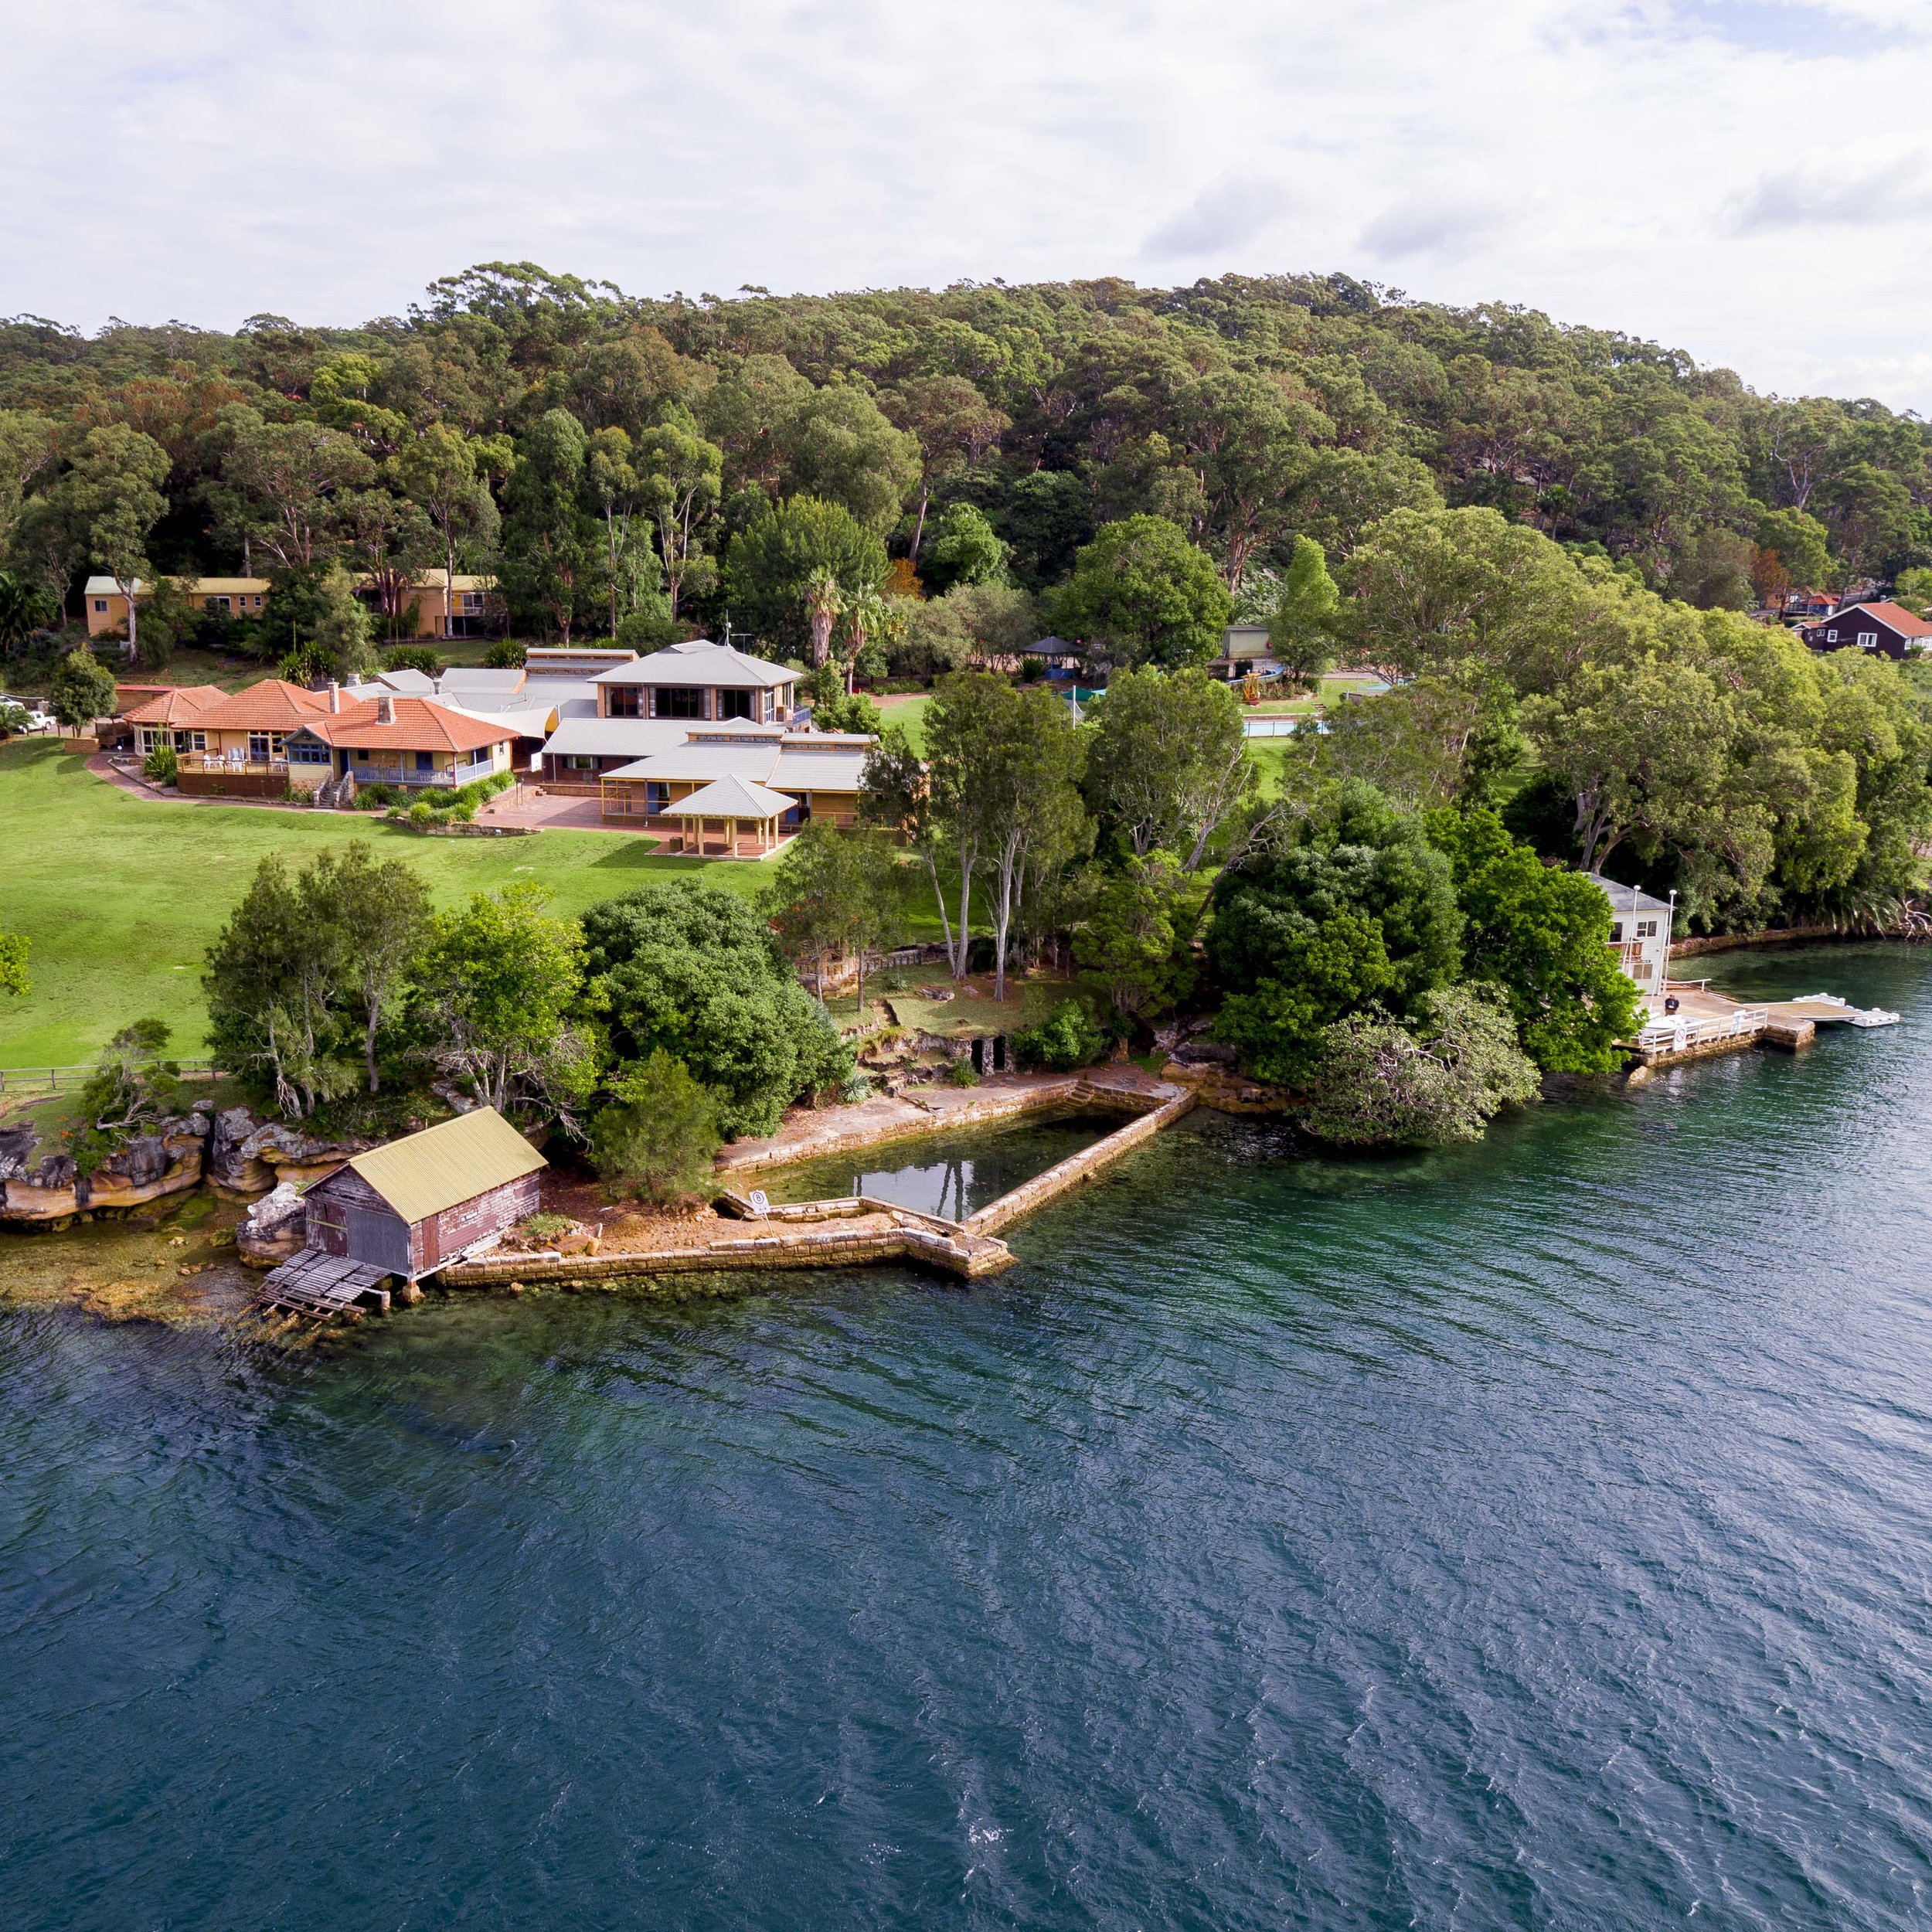 Port Hacking - Rathane Road, Royal National Park, 2232Located on the southern bank of the Port Hacking River, enjoy the absolute waterfront setting in the stunning Royal National Park, while only fifteen minutes drive from Sutherland.